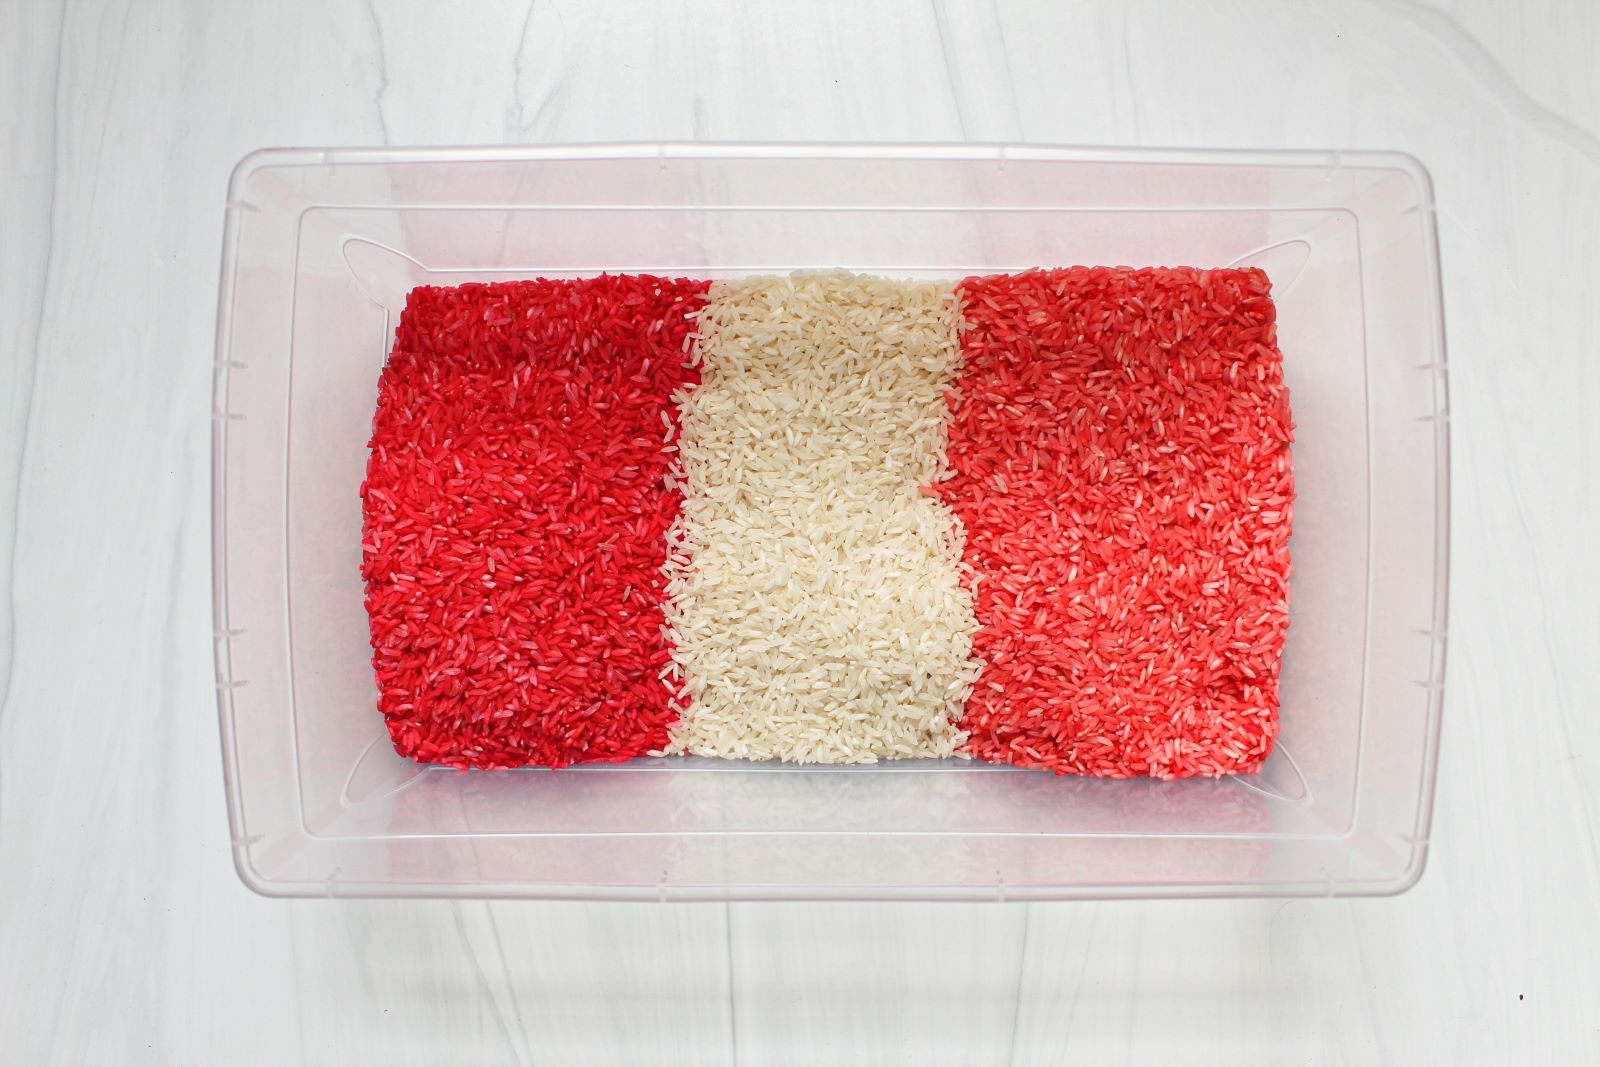 red white pink rice for valentine's day sensory bin 1